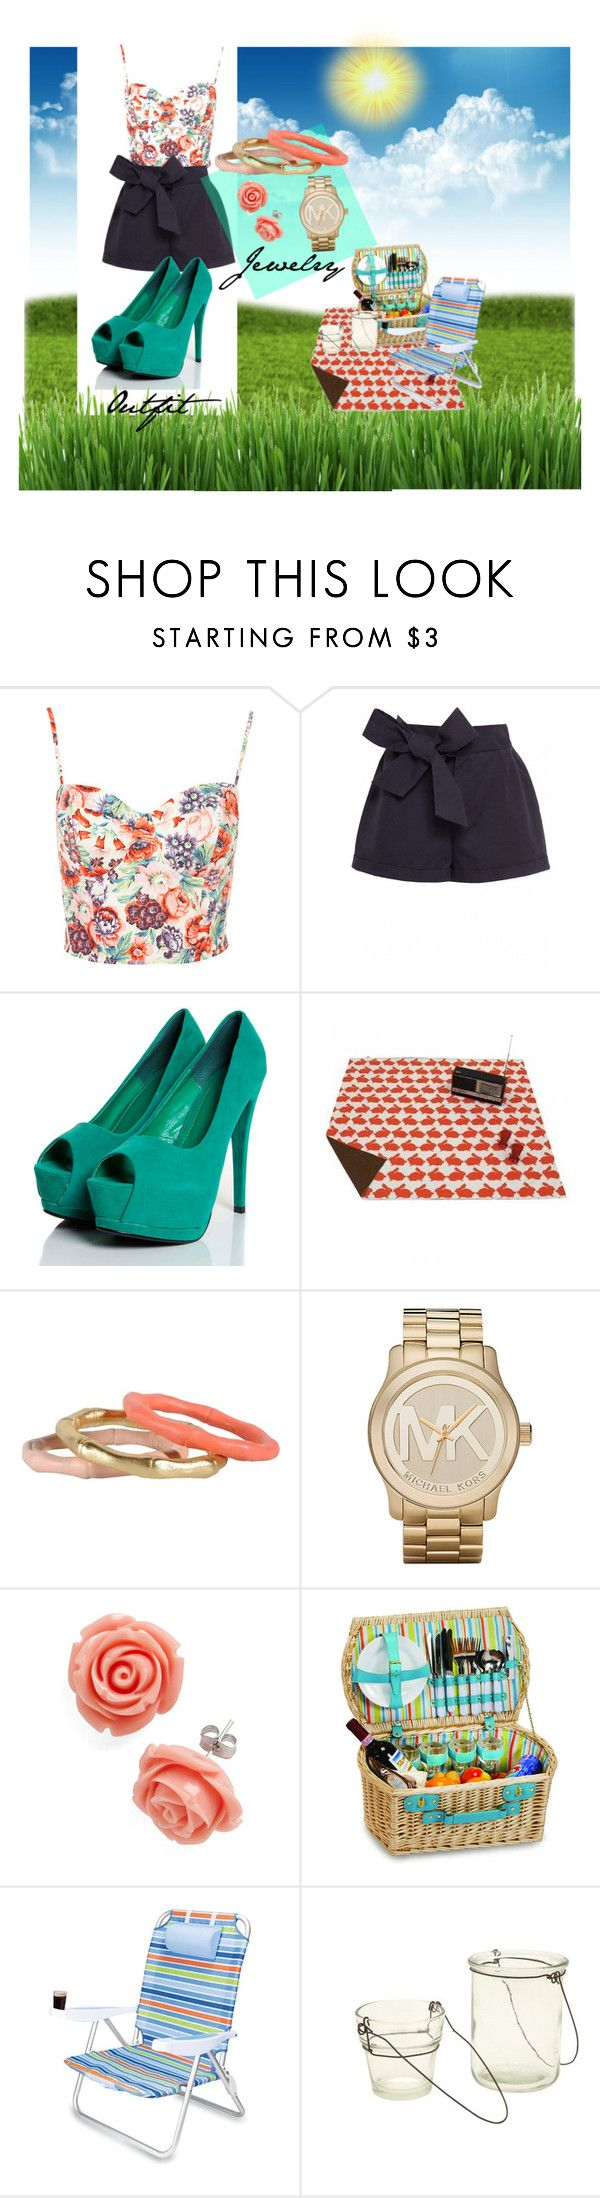 """Picnic date outfit"" by melgg ❤ liked on Polyvore featuring Twenty8Twelve, Natalia Brilli, Michael Kors, Jayson Home, floral corset, high waisted shorts, romantic, high heels, watch and arm candy"